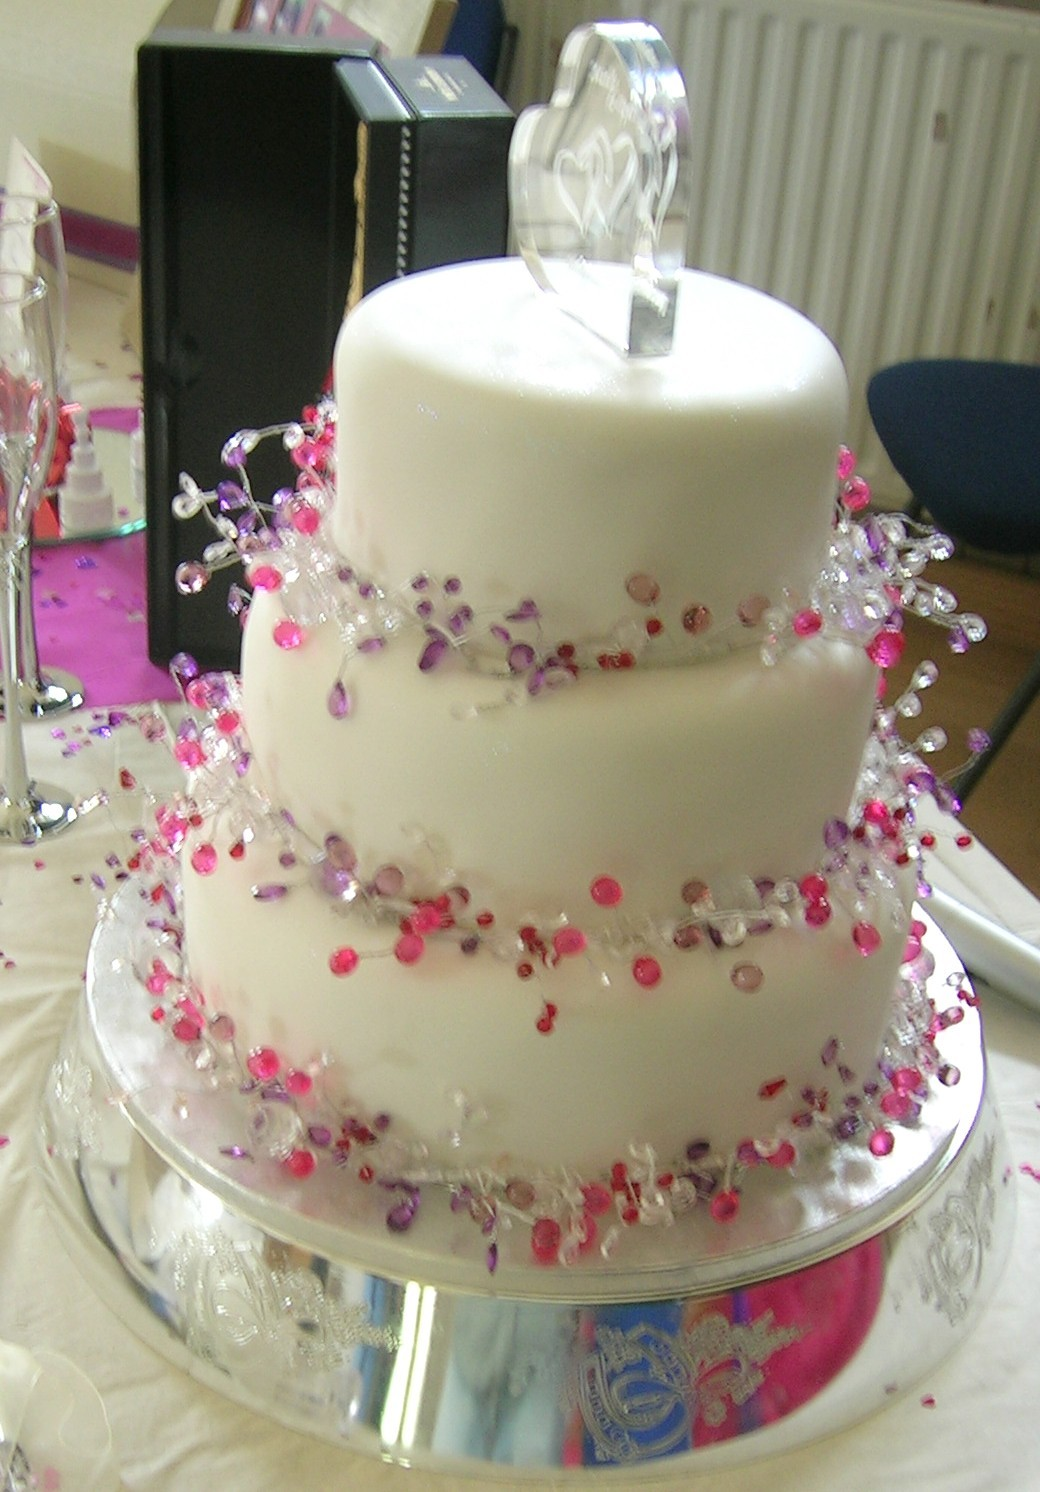 Wedding Cake Decorating Pictures Ideas - wedding flowers 2013